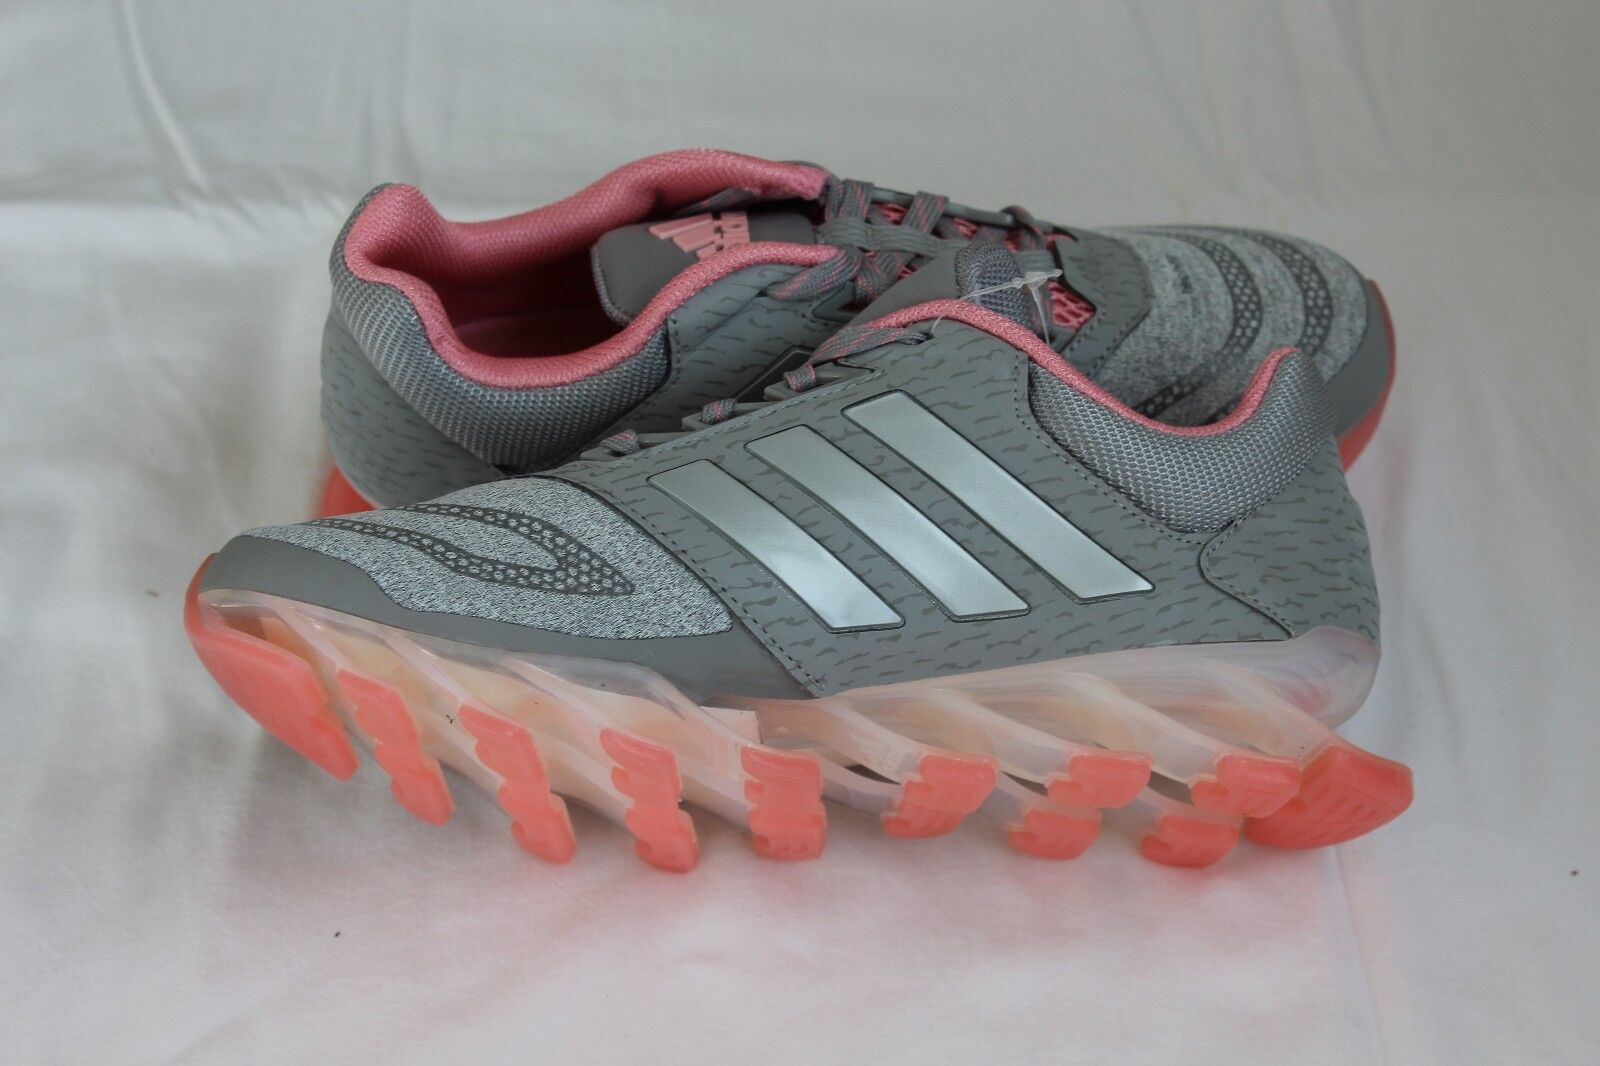 ADIDAS LADIES SPRINGBLADE DRIVE 2 6 TRAINERS UK 3.5 - 6 2 16e884